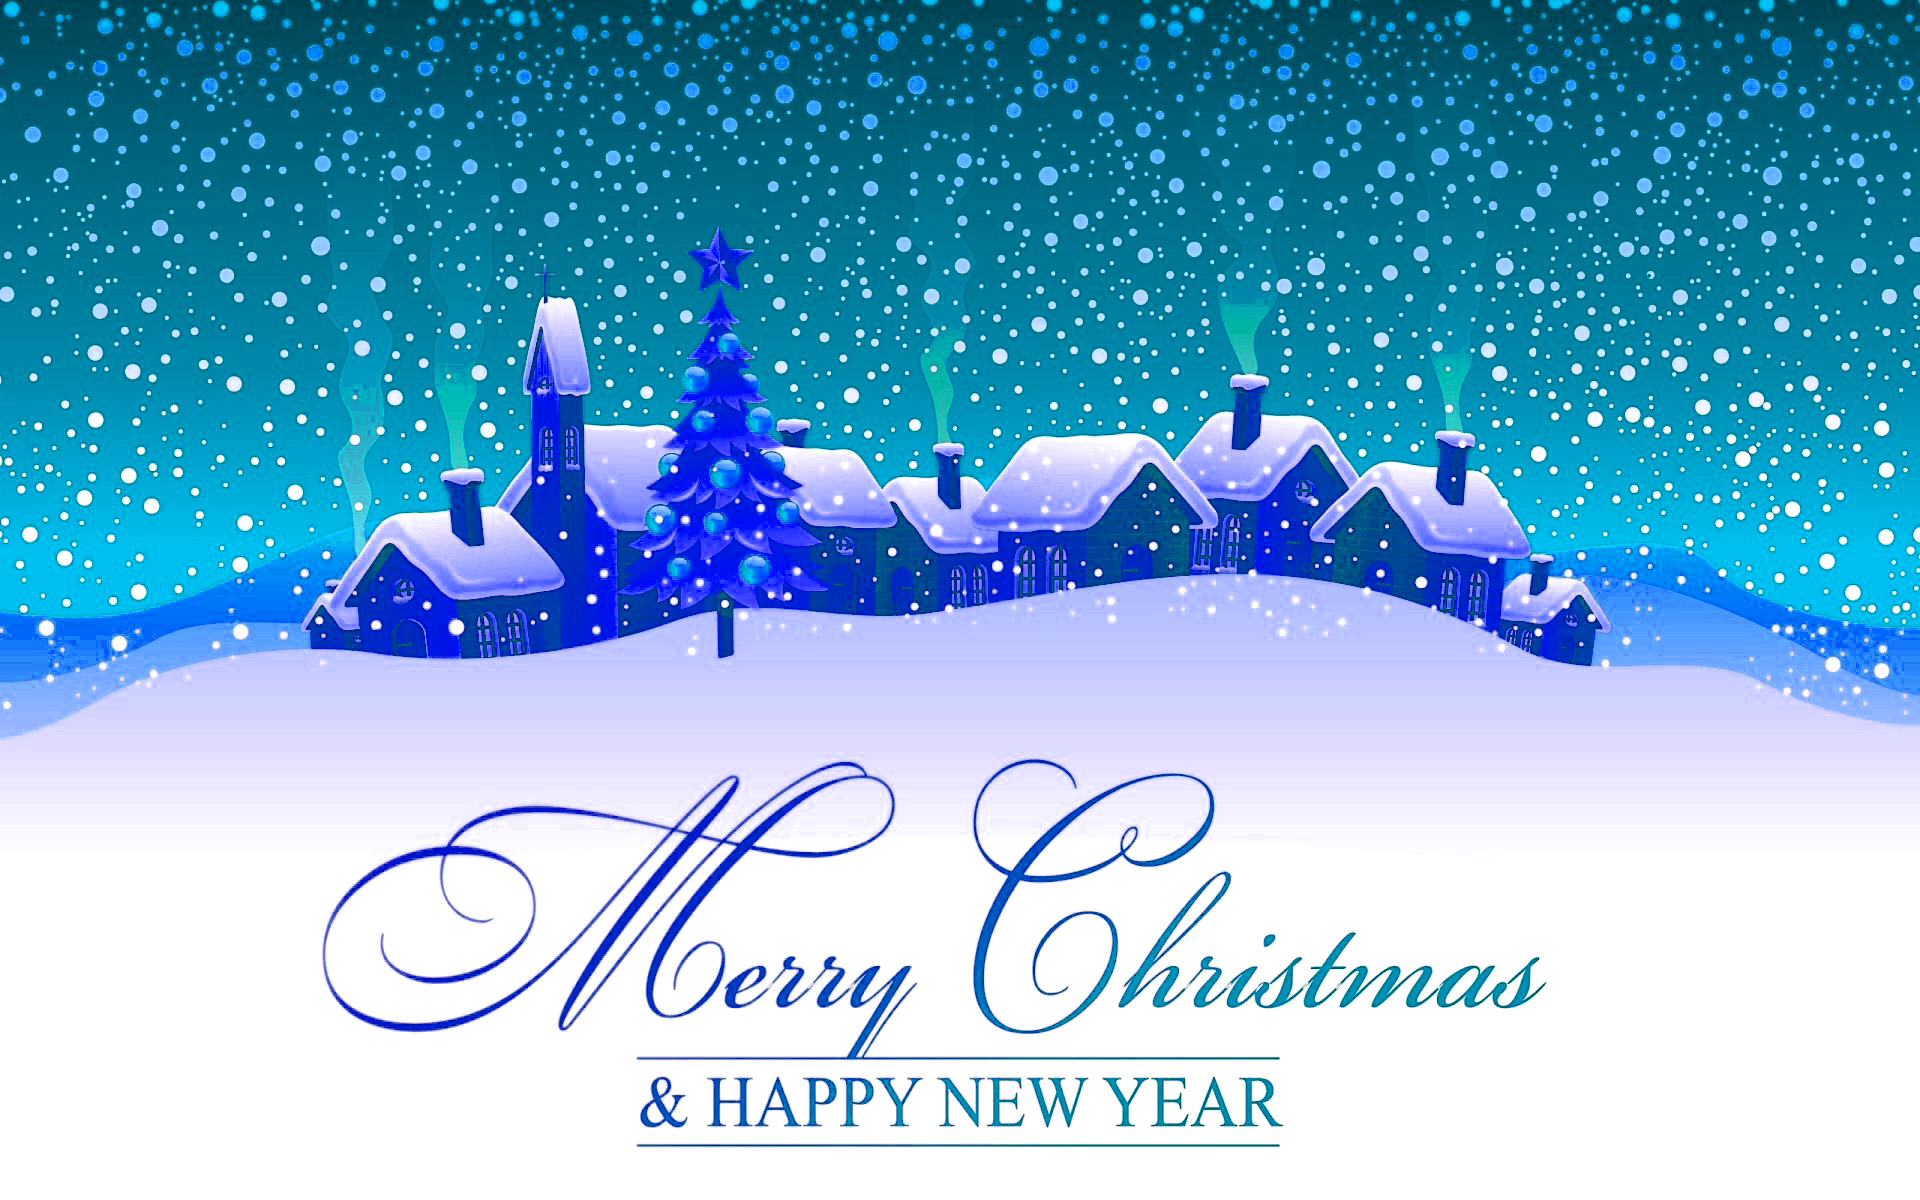 Christmas And Happy New Year Images Quotes